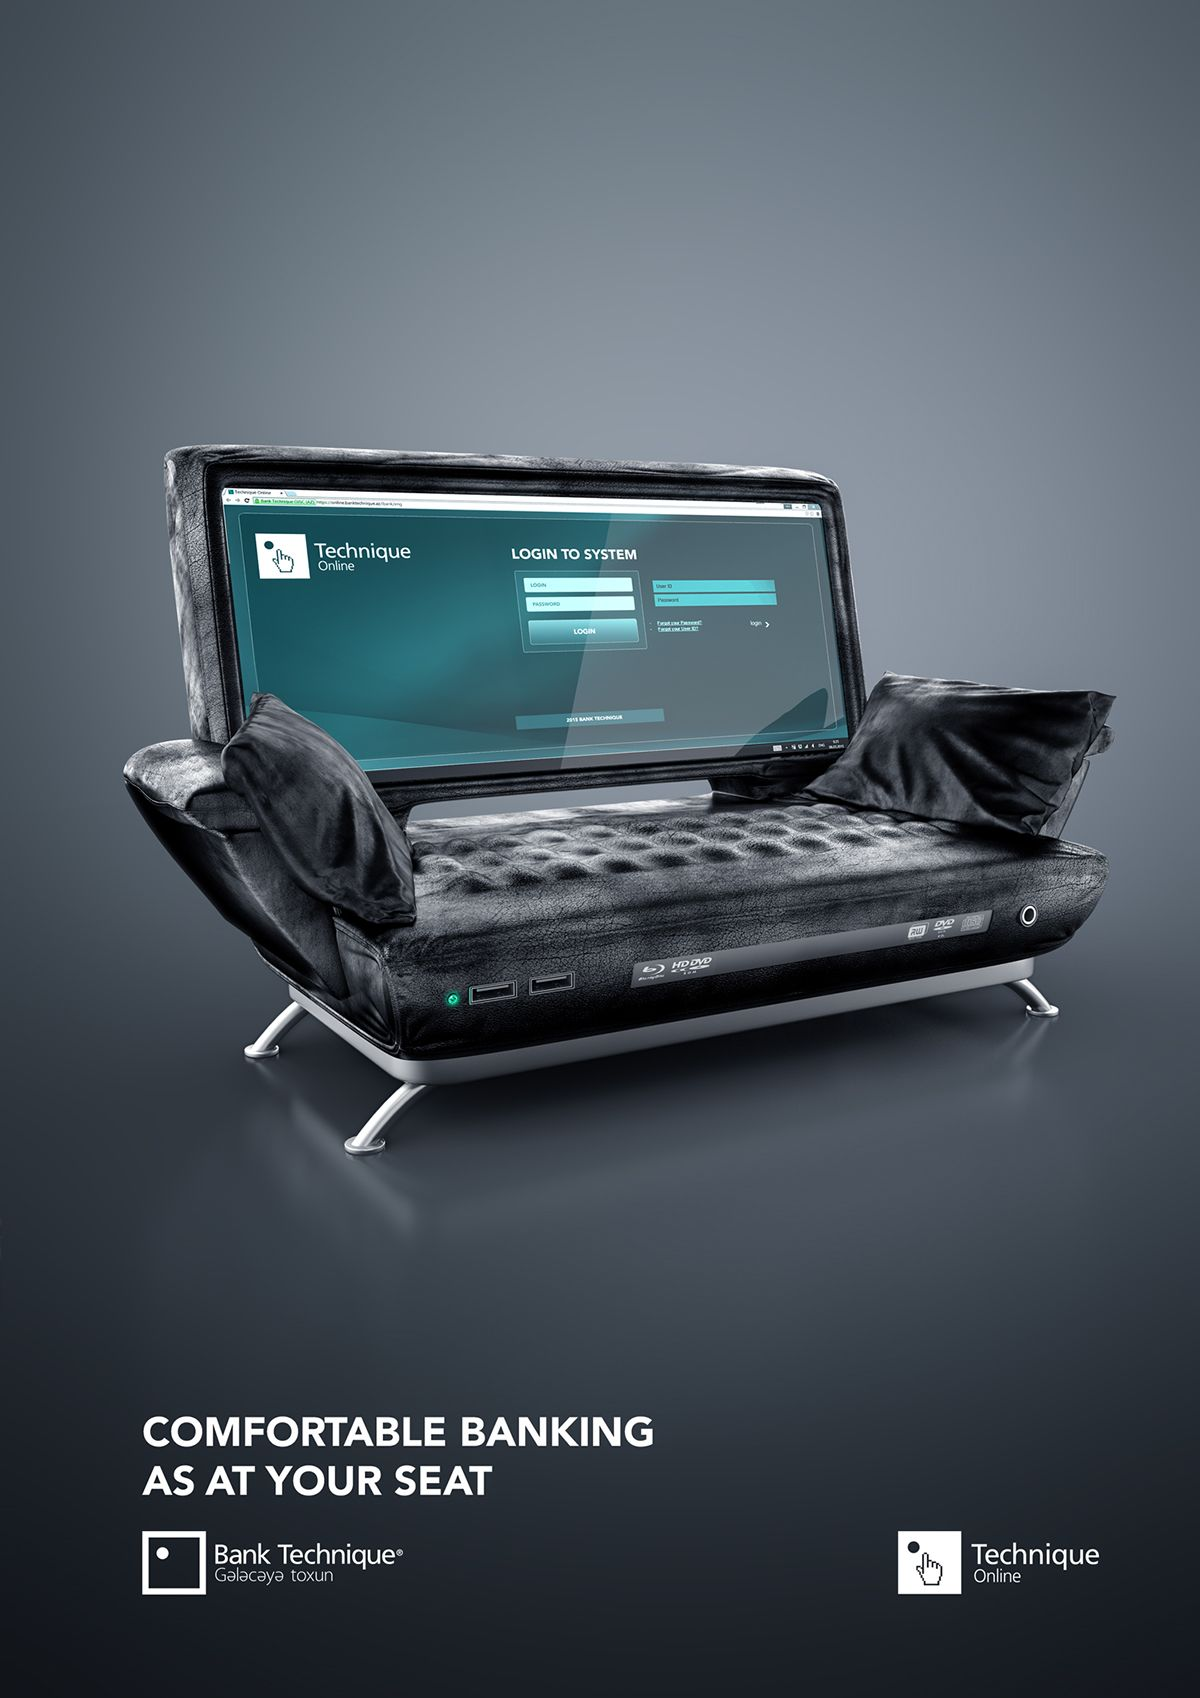 Online Banking AD on Behance | Banks ads, Banks ...